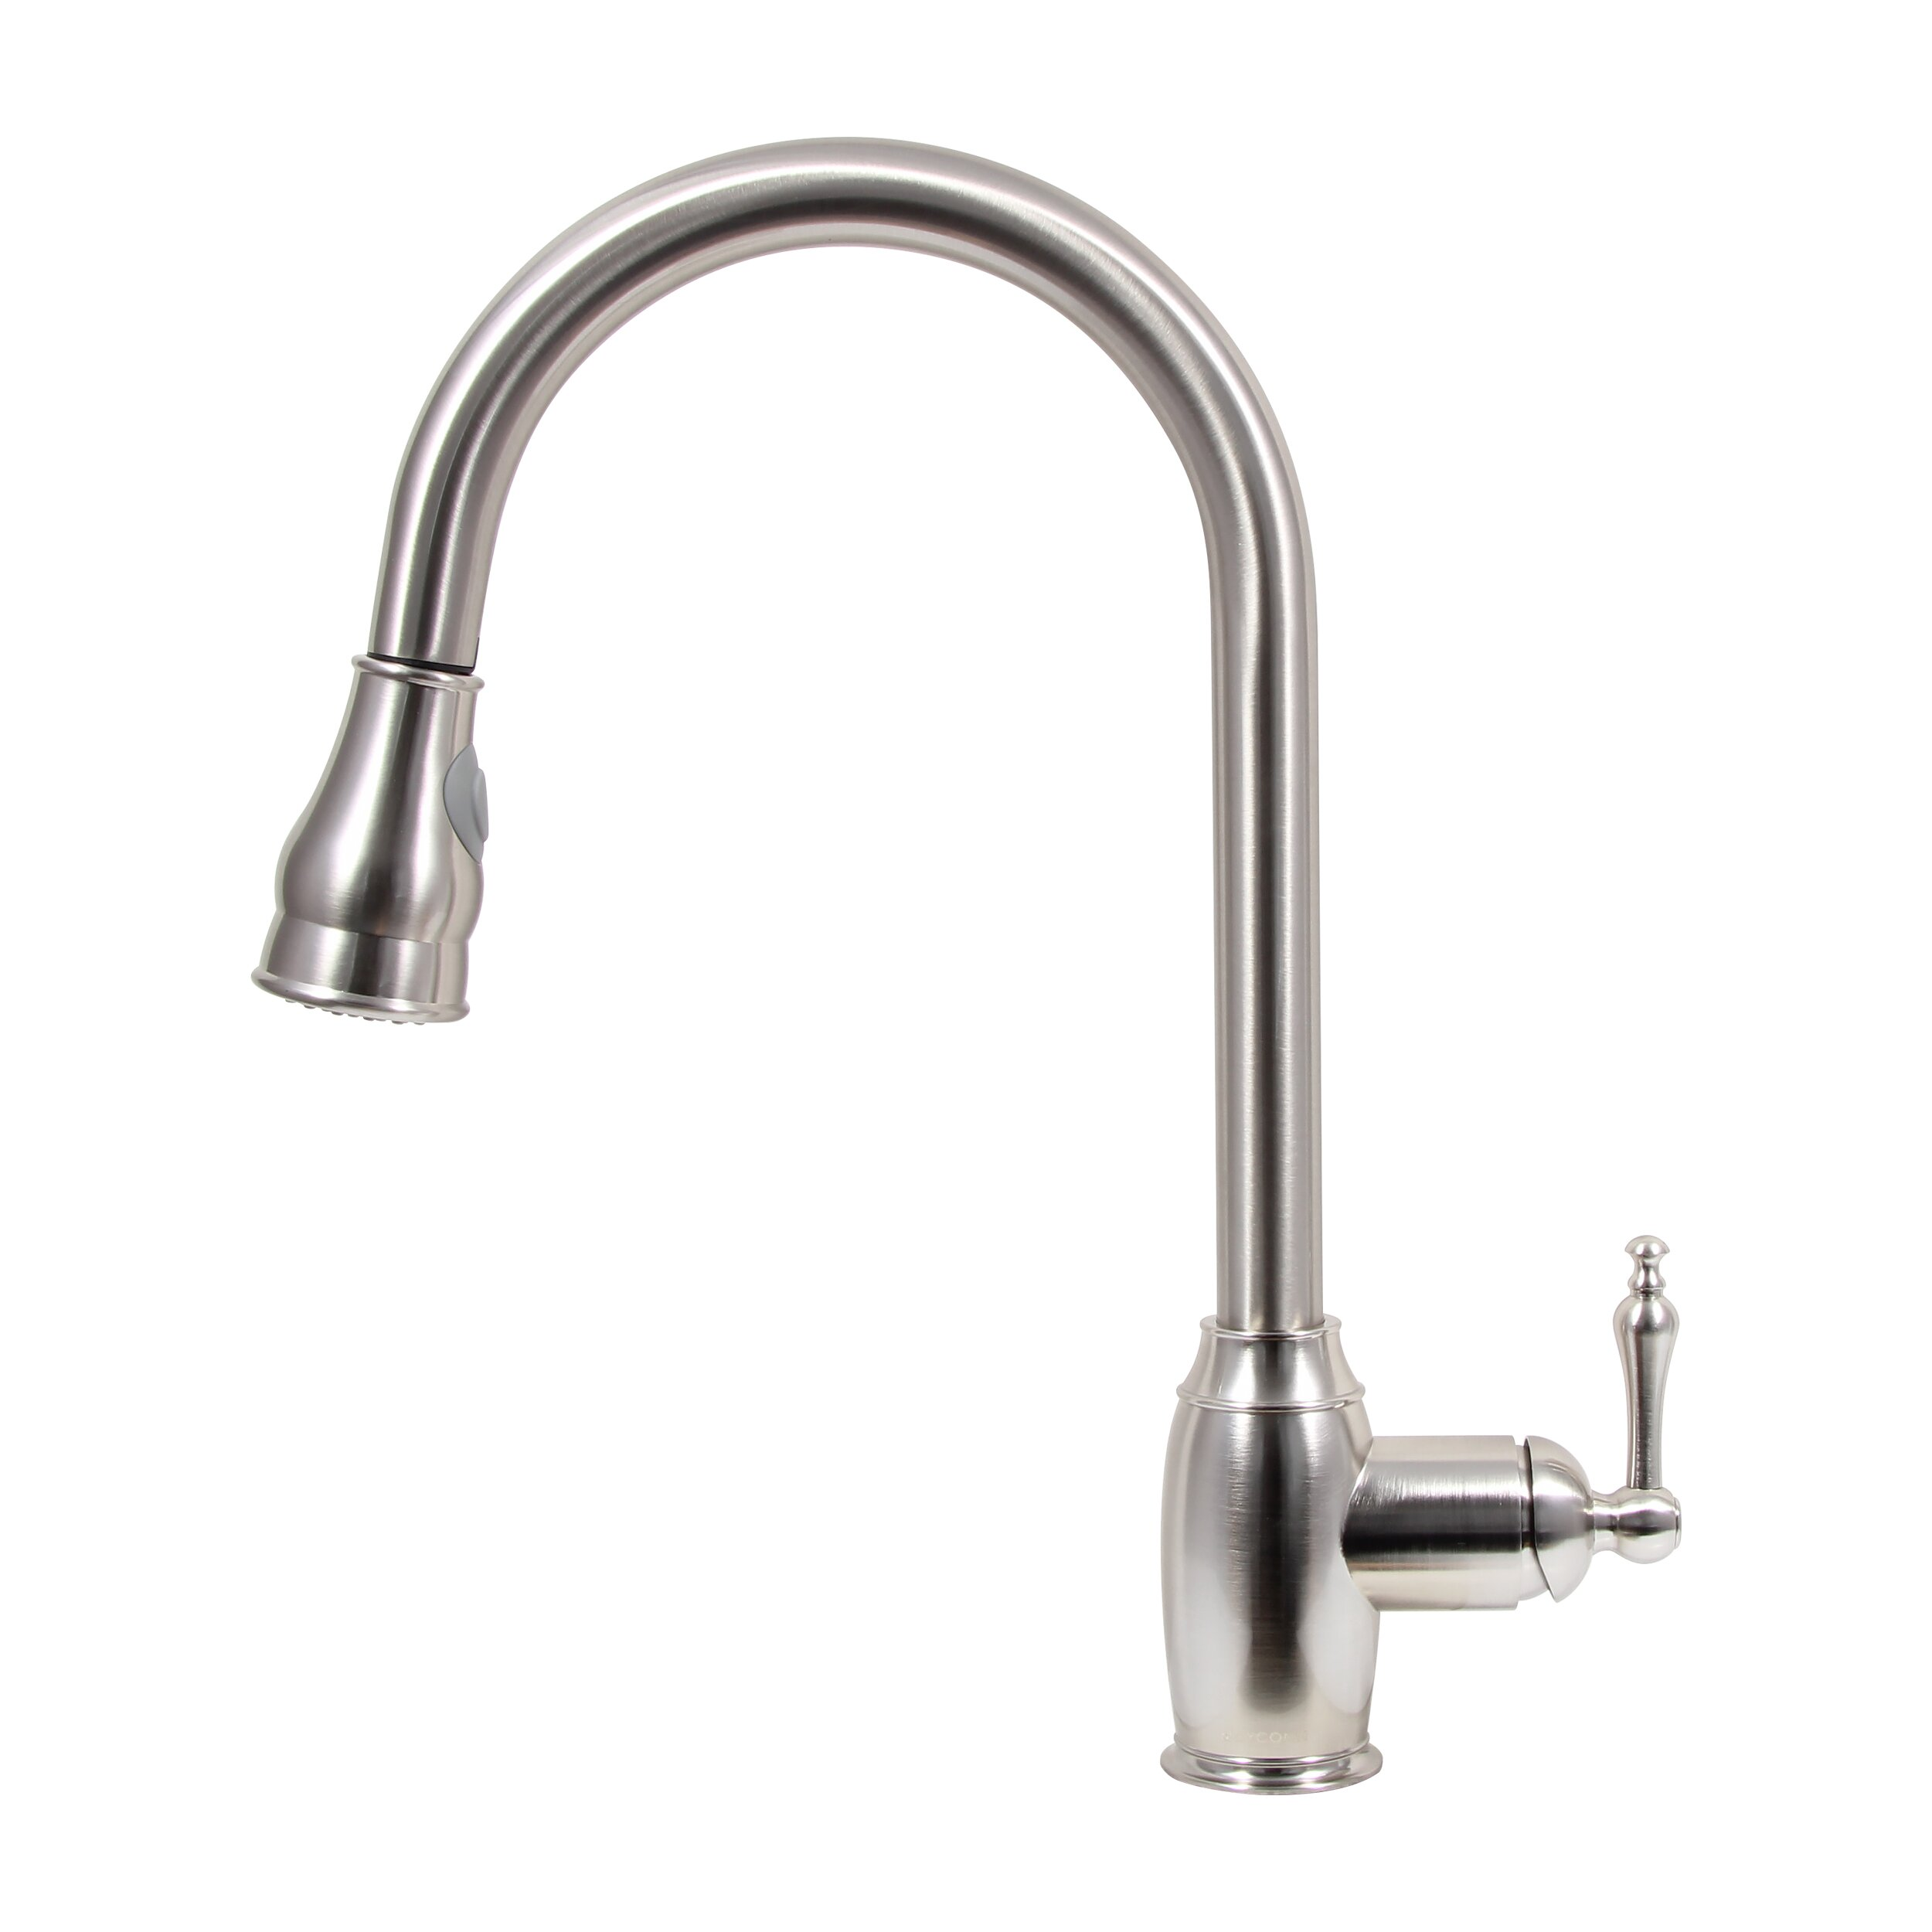 Dyconn Faucet Pull Down Dual Spray Single Handle Kitchen Faucet Reviews Wayfair